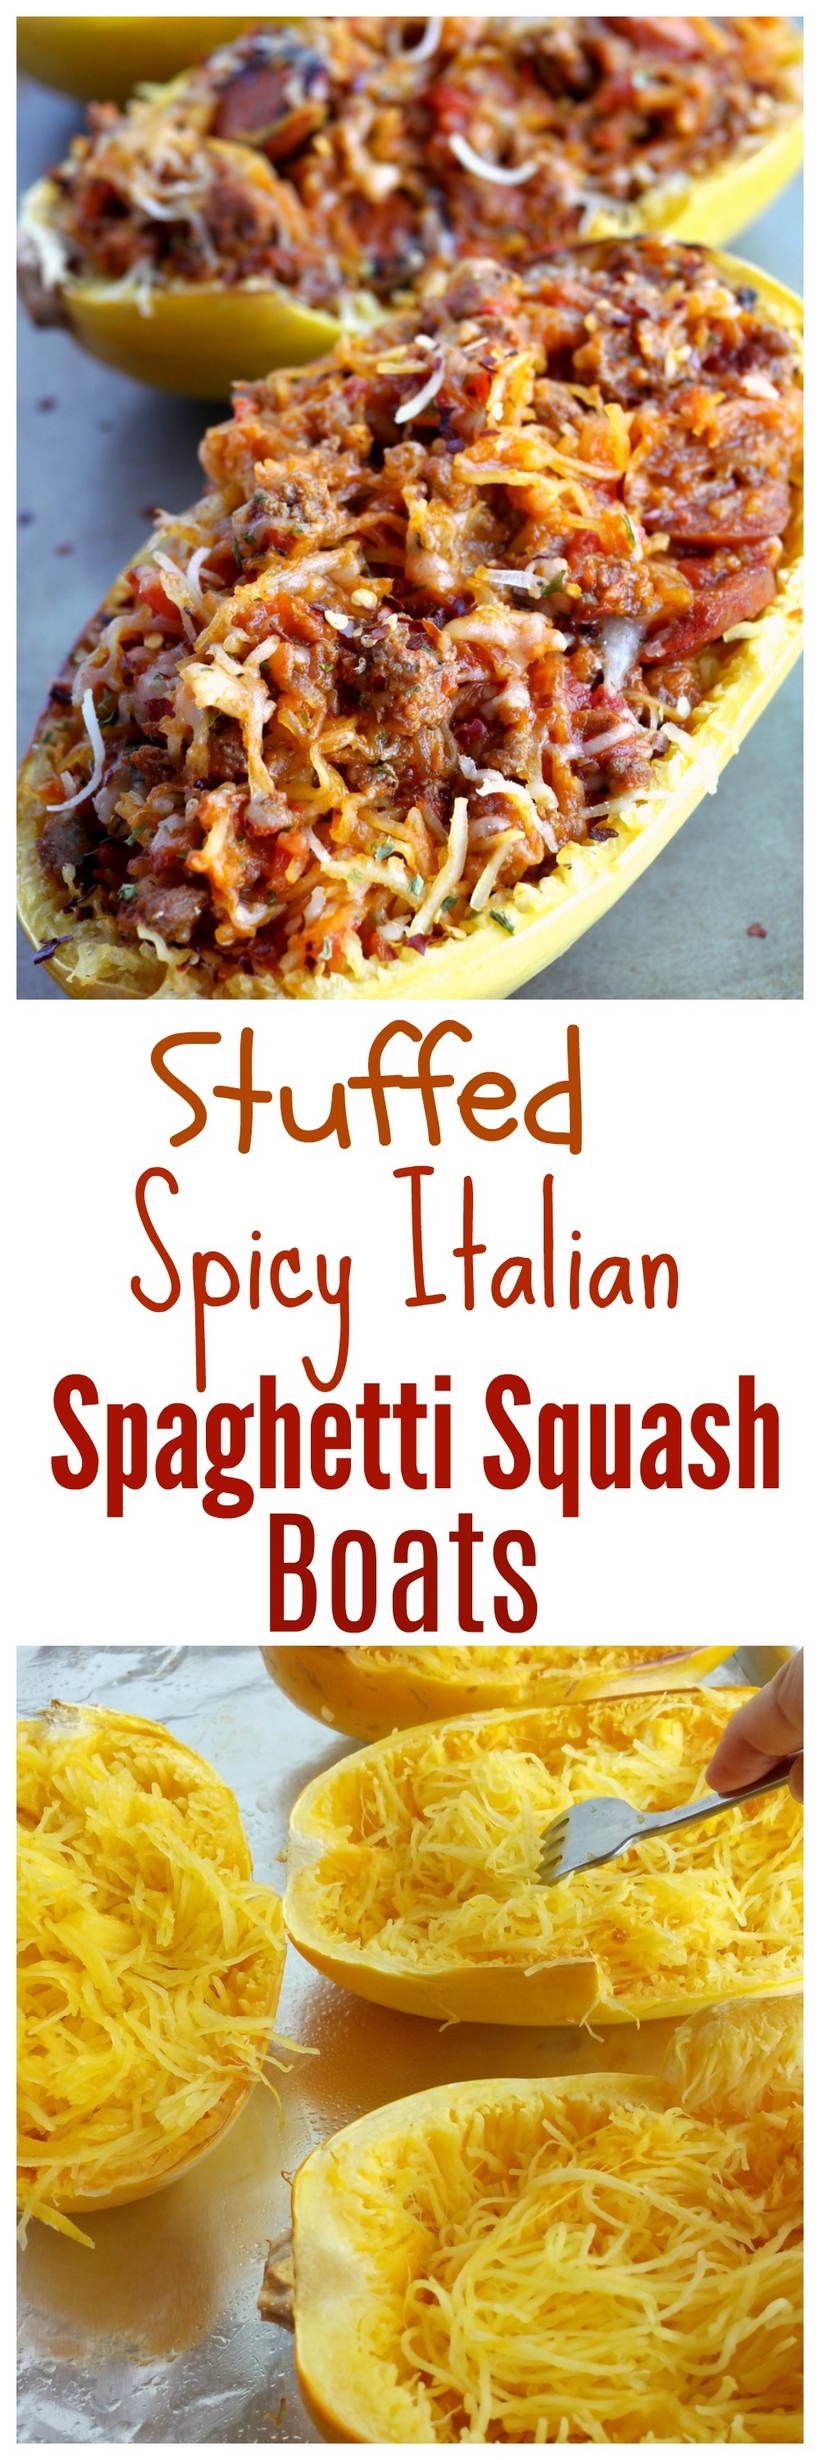 Stuffed Spicy Italian Spaghetti Squash Boats ~ All the flavors of a hearty spaghetti dinner packed into a tender, roastedspaghetti squash. This Stuffed Spicy Italian Spaghetti Squash Boats recipe are the answer to comfort food made in a healthy way. A fork is all it takes to separate the pale orange strands of the gourd into vegetable noodles. It couldn't be easier from NoblePig.com. #noblepig #spaghettisquash #italianfood #healthyeats